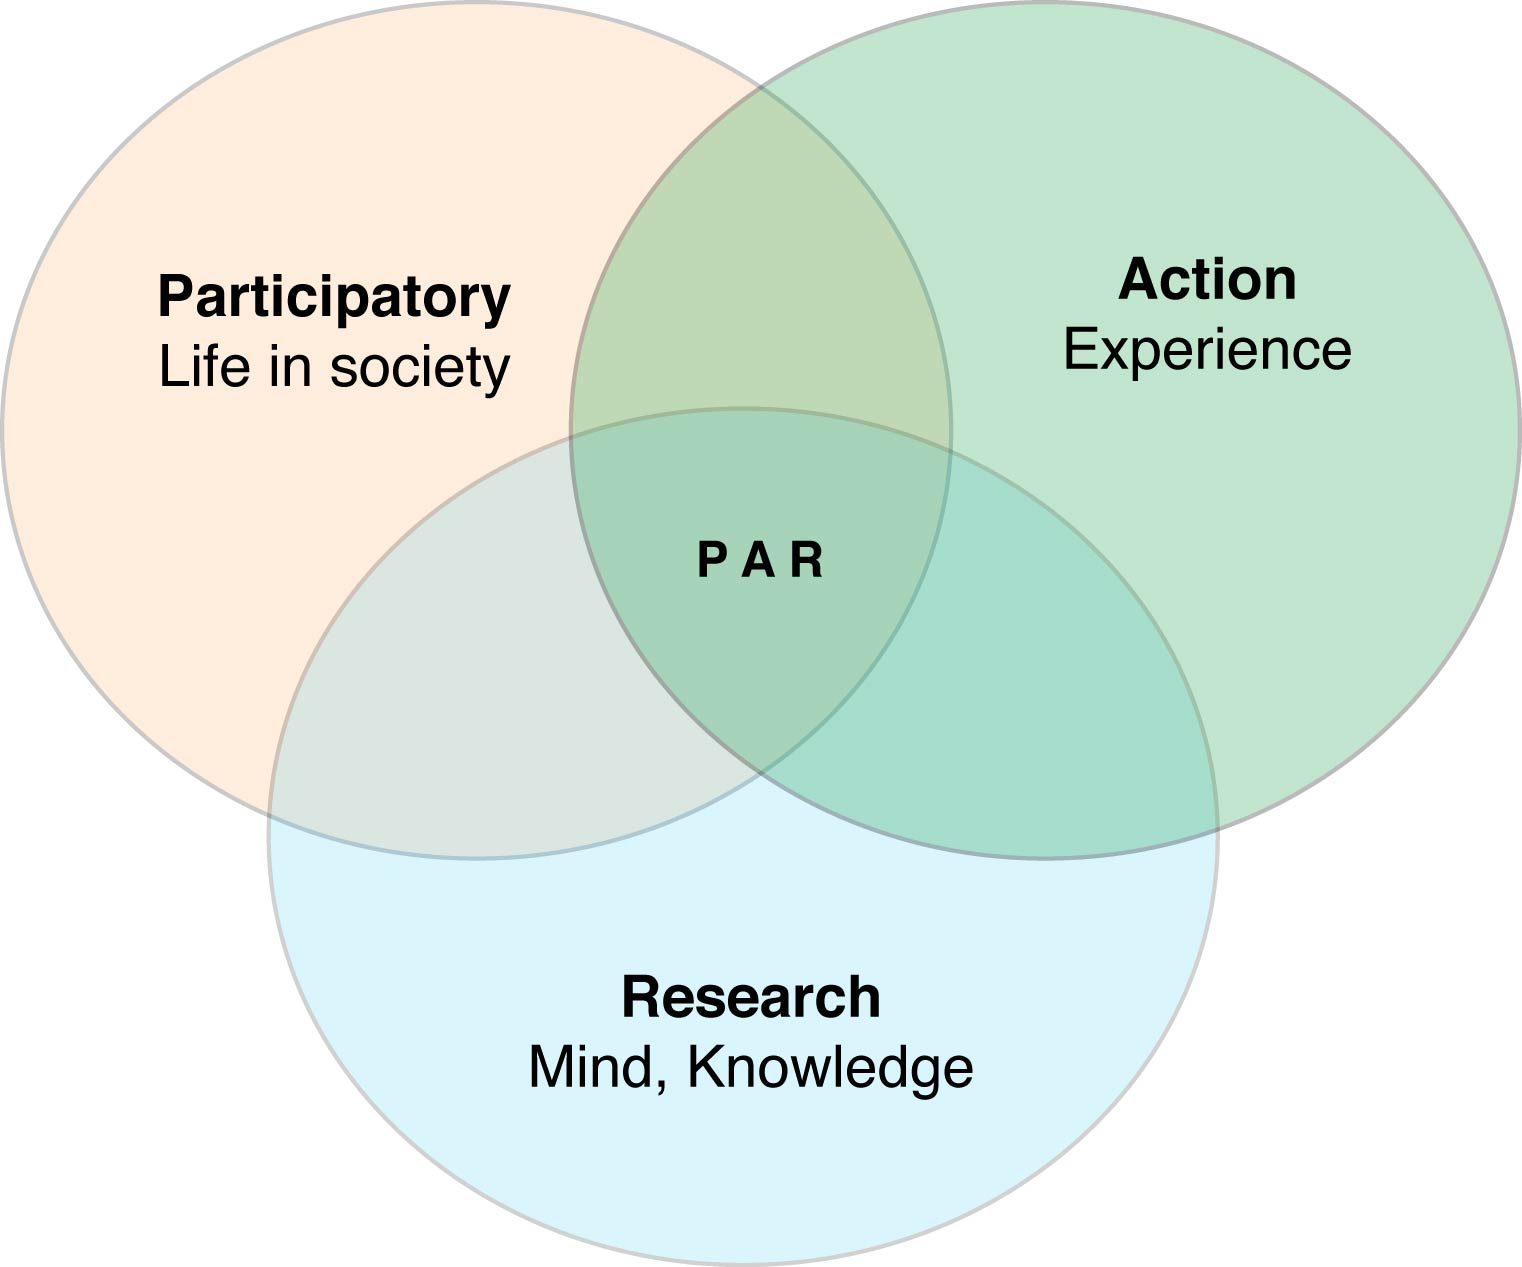 6 Way Venn Diagram Generator: Venn diagram of Participatory Action Research.jpg - Wikipedia,Chart